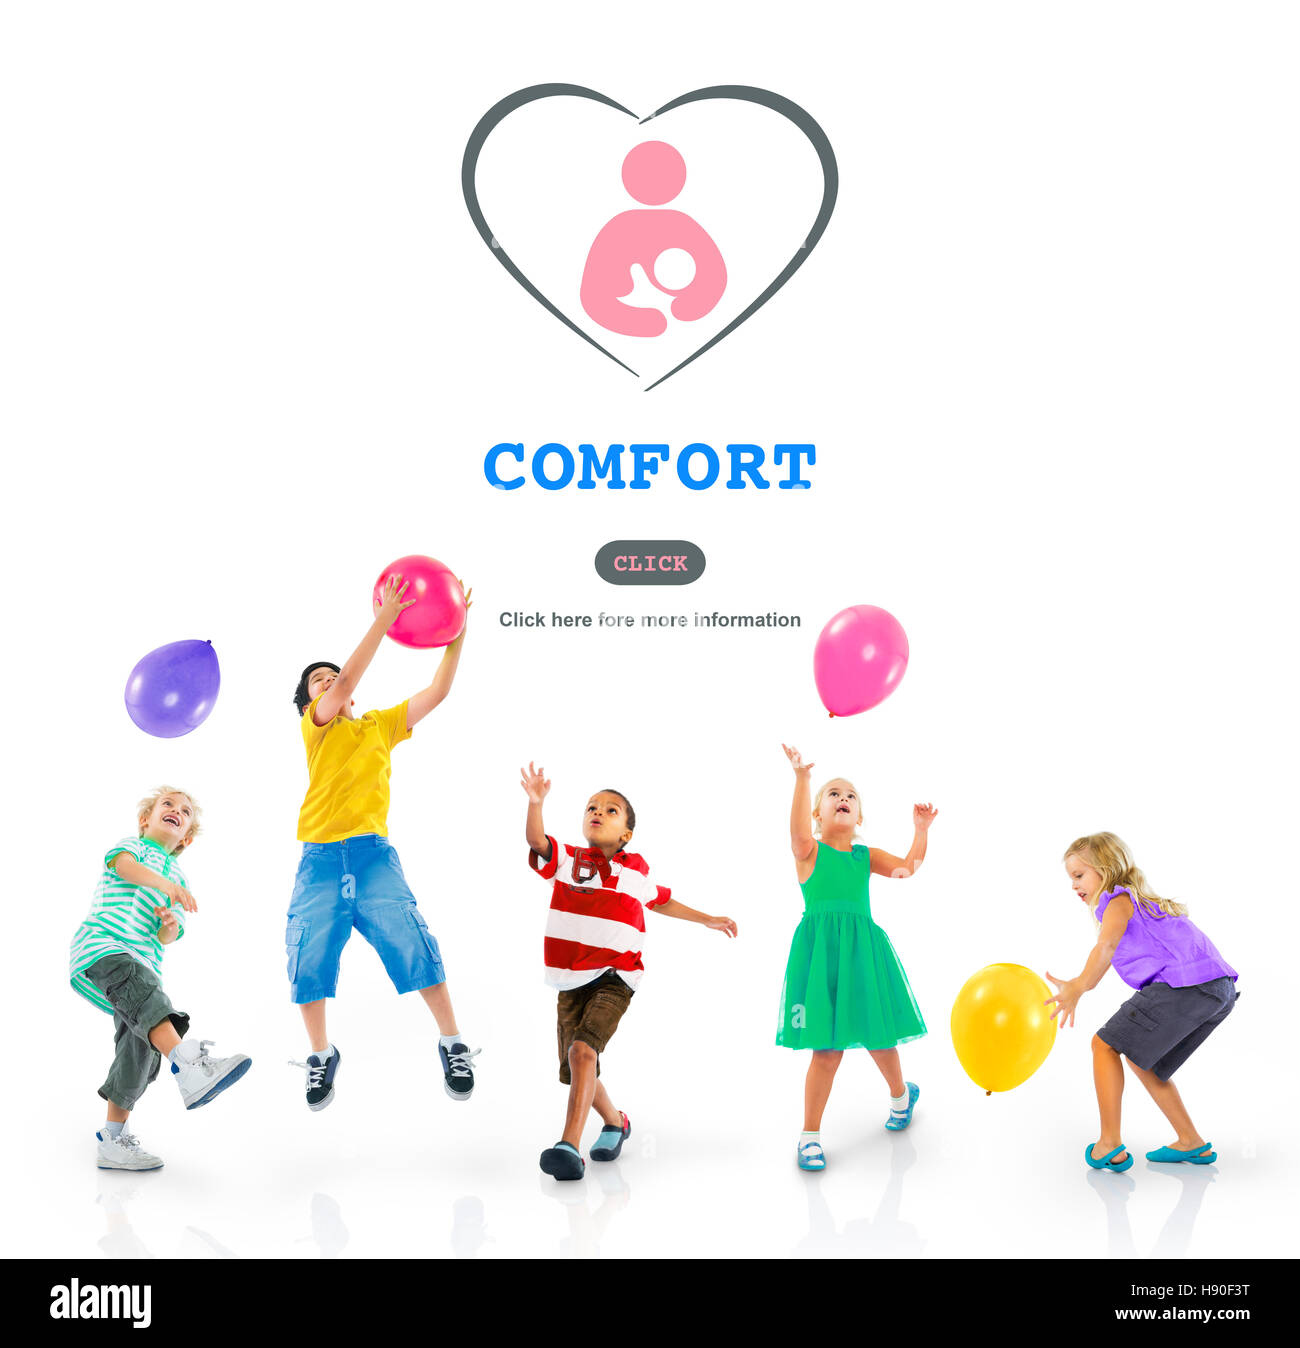 Child Training Comfort Affection Nursery Concept - Stock Image